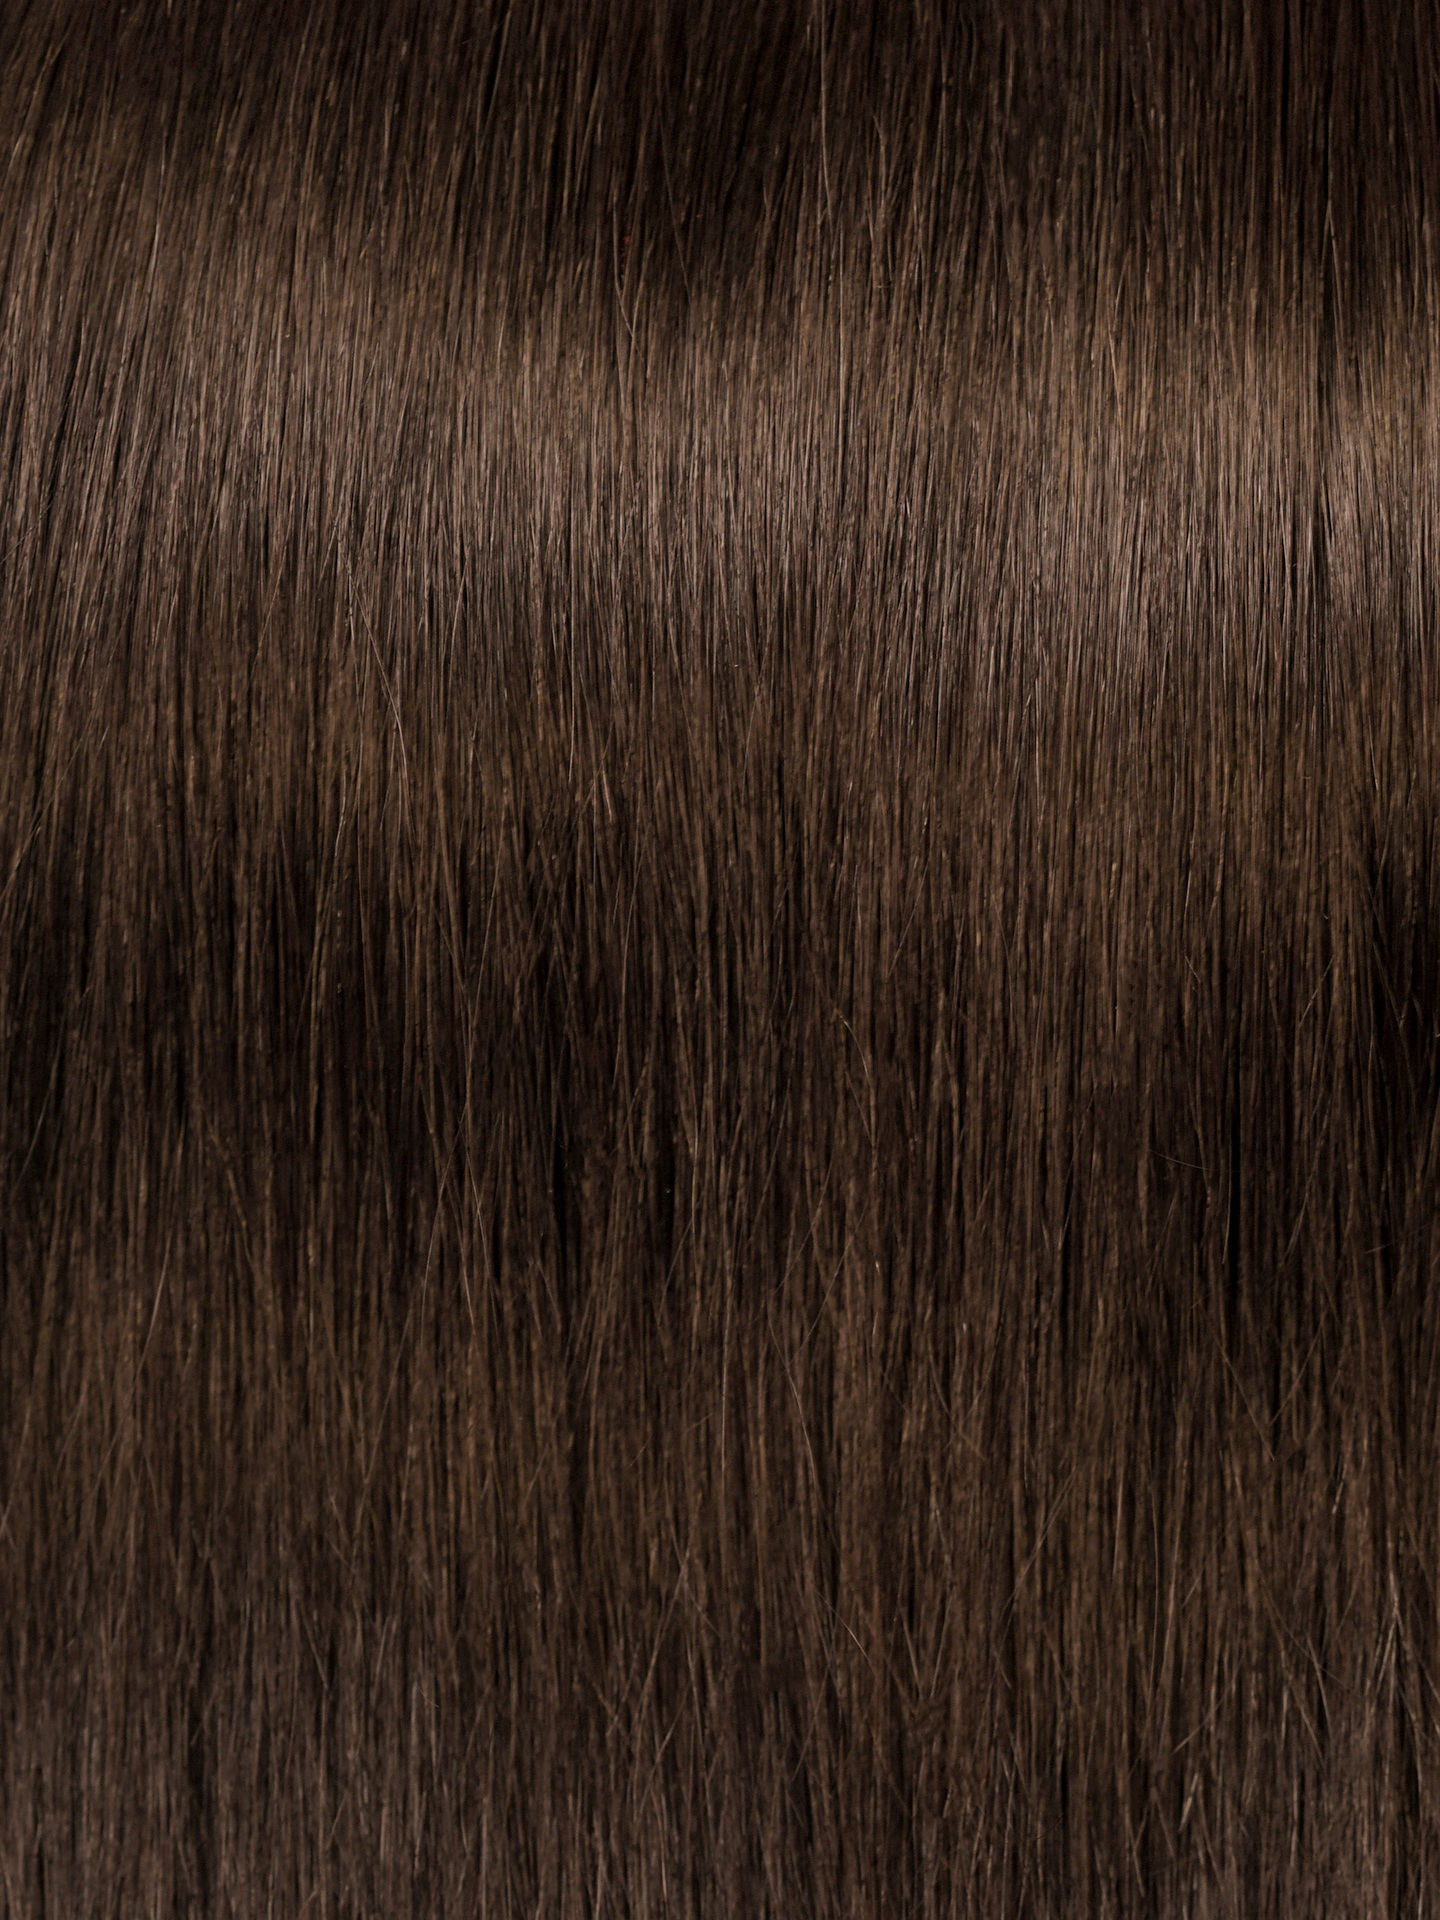 DARKEST BROWN #2 - This neutral shade is the deepest variation of brown currently available. Subtle highlights of medium brown are laced throughout each weft to give a much more natural finish.